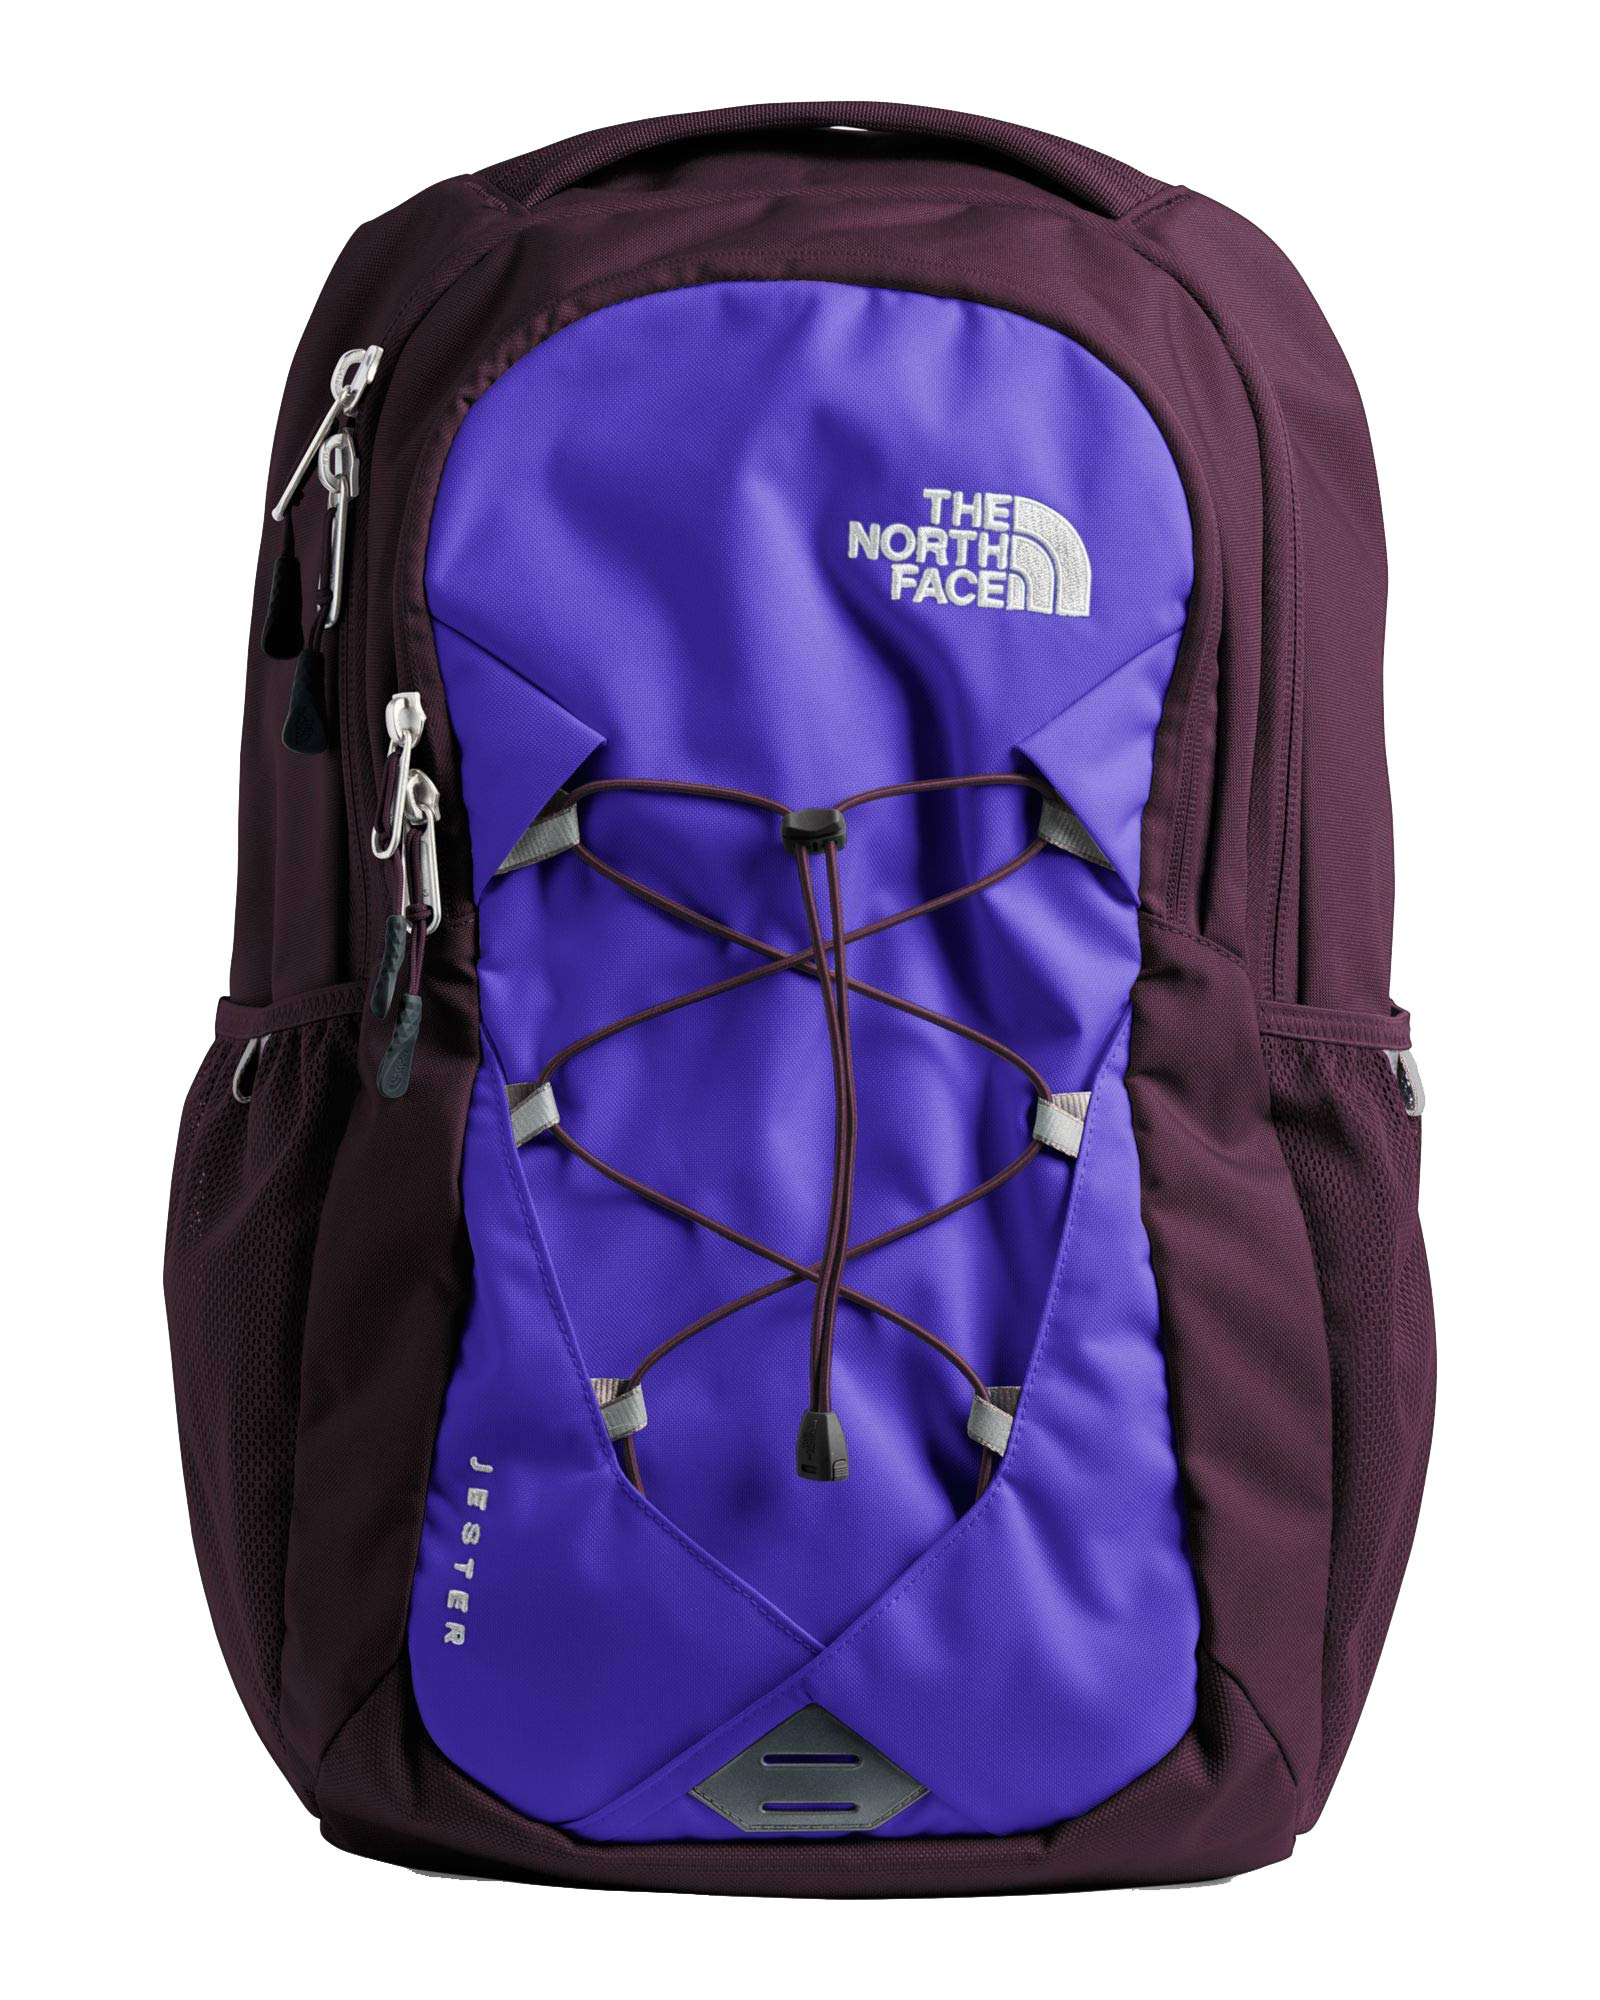 The North Face Women's Jester Backpack - Deep Blue & Galaxy Purple - OS